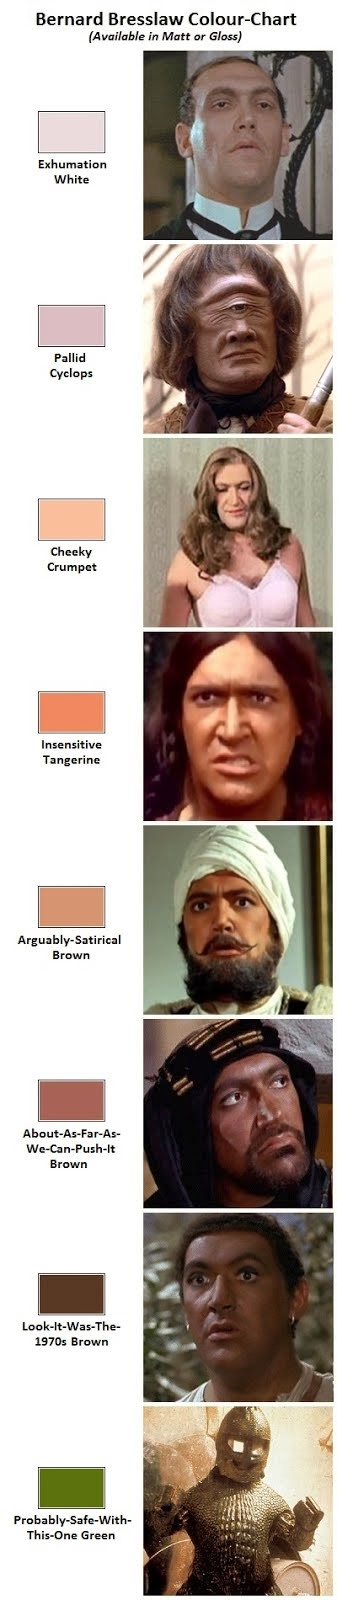 The United Colours of Bernard Bresslaw.